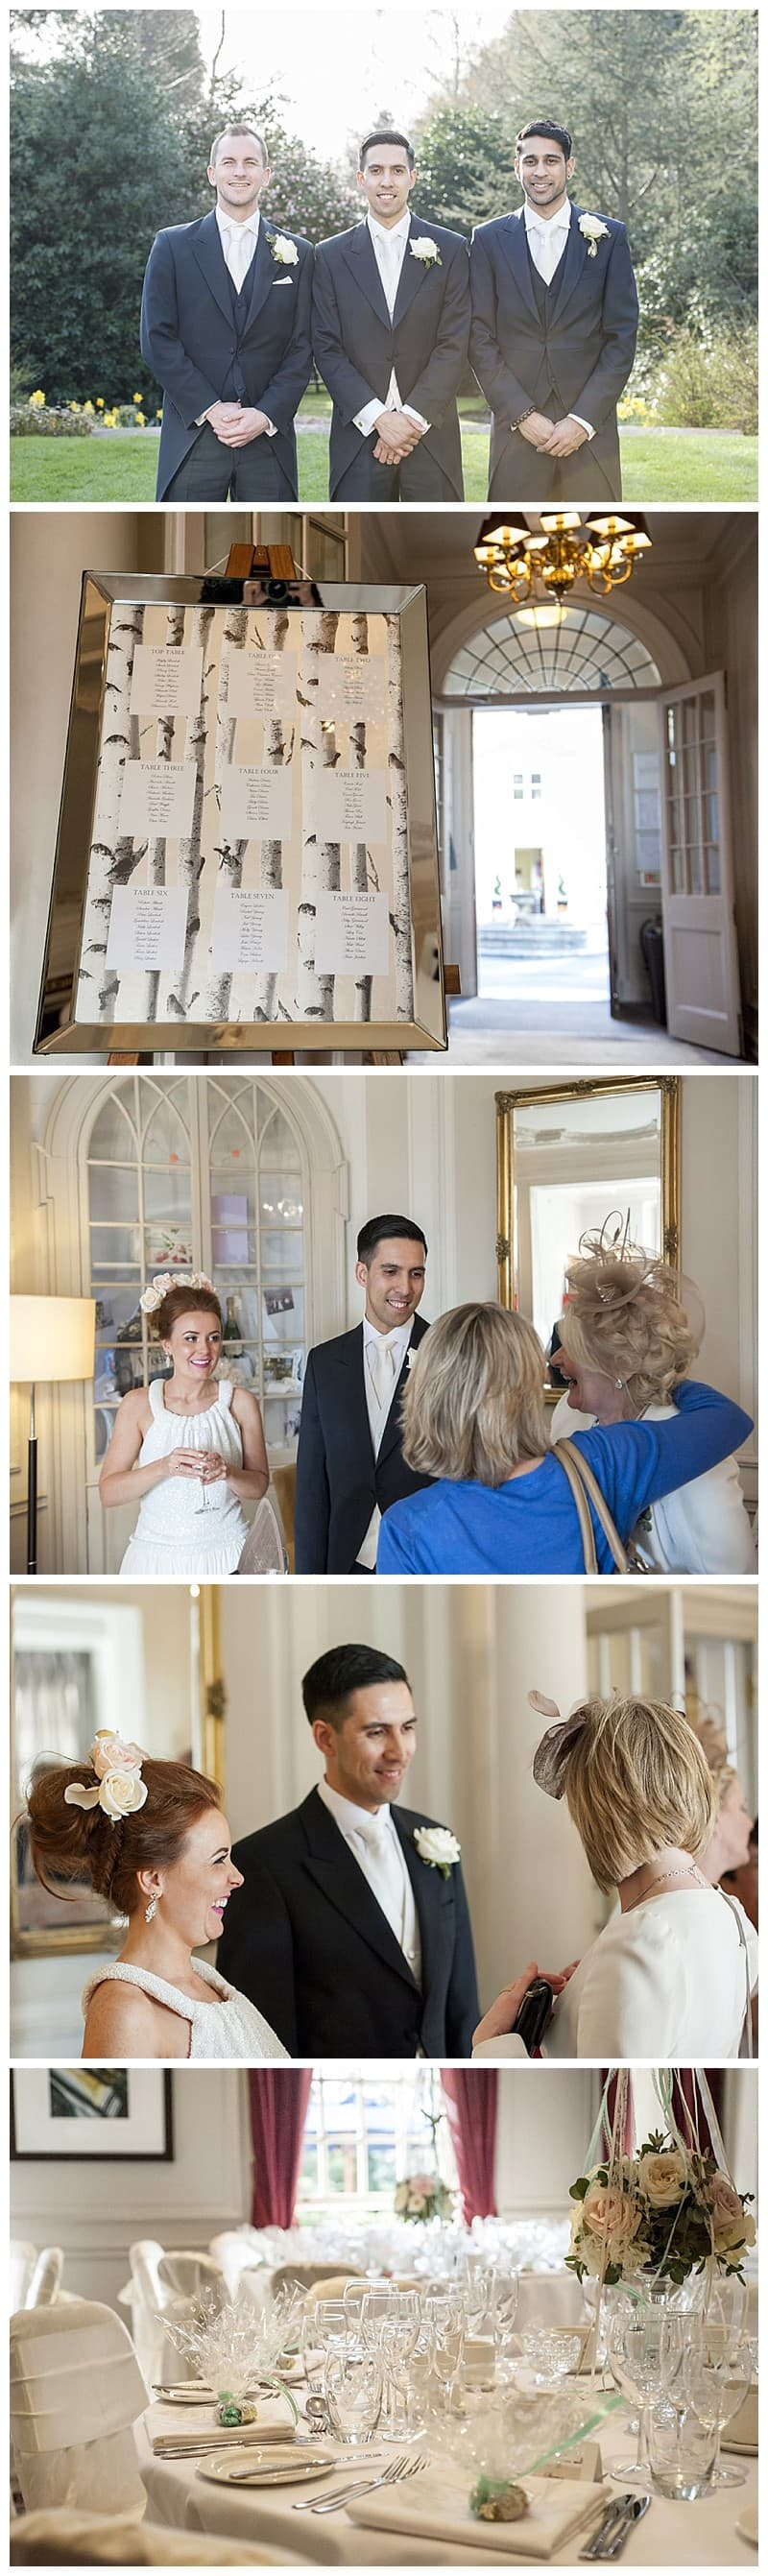 Stuart & Hayley De Vere's Hotel, Surrey Wedding, Benjamin Wetherall Photography | London Wedding Photography0014.2